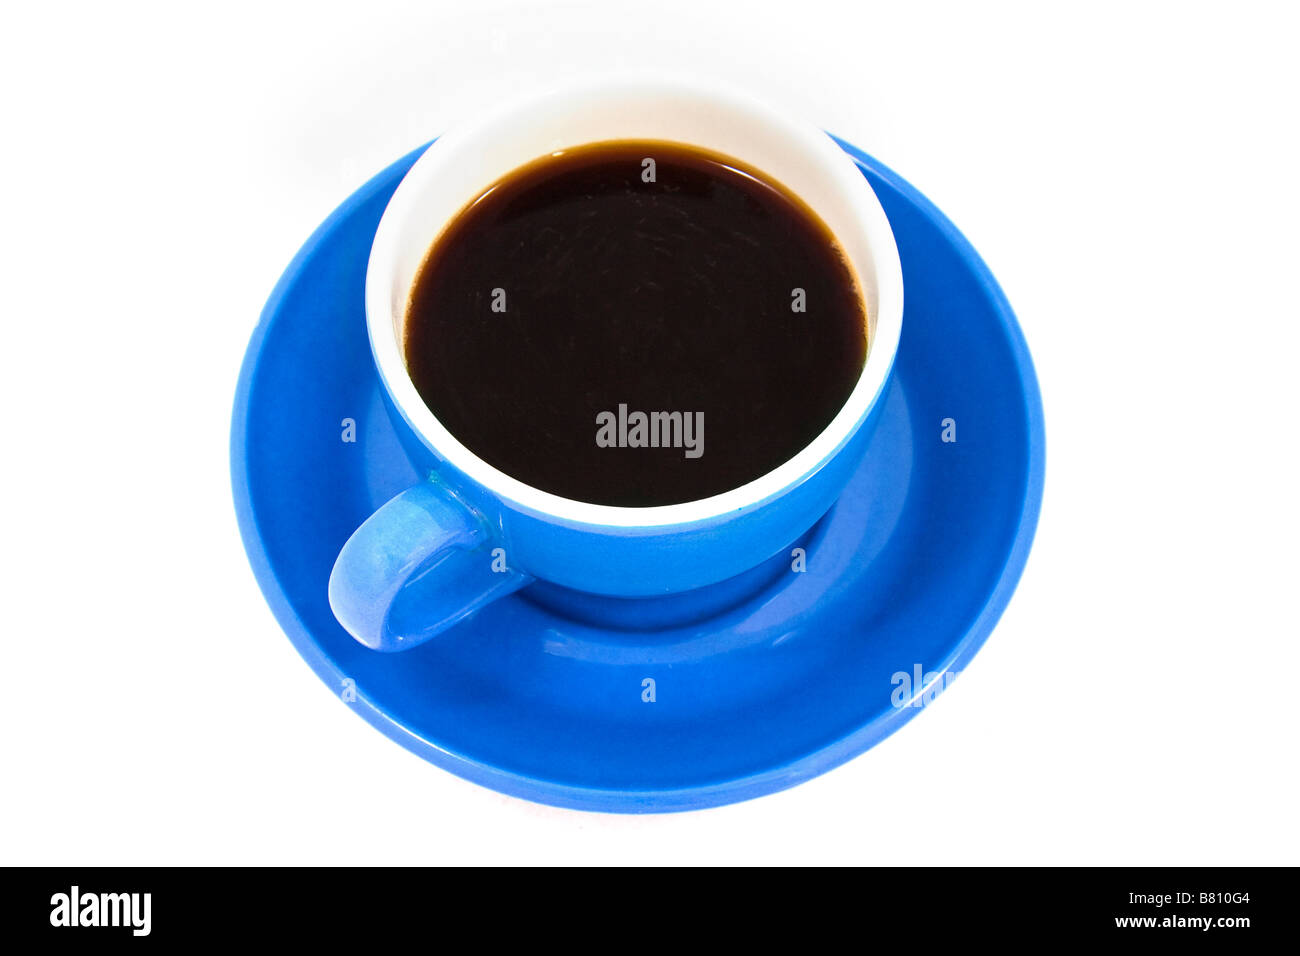 Cup of black coffee in a bright blue cup and saucer on a white background - Stock Image